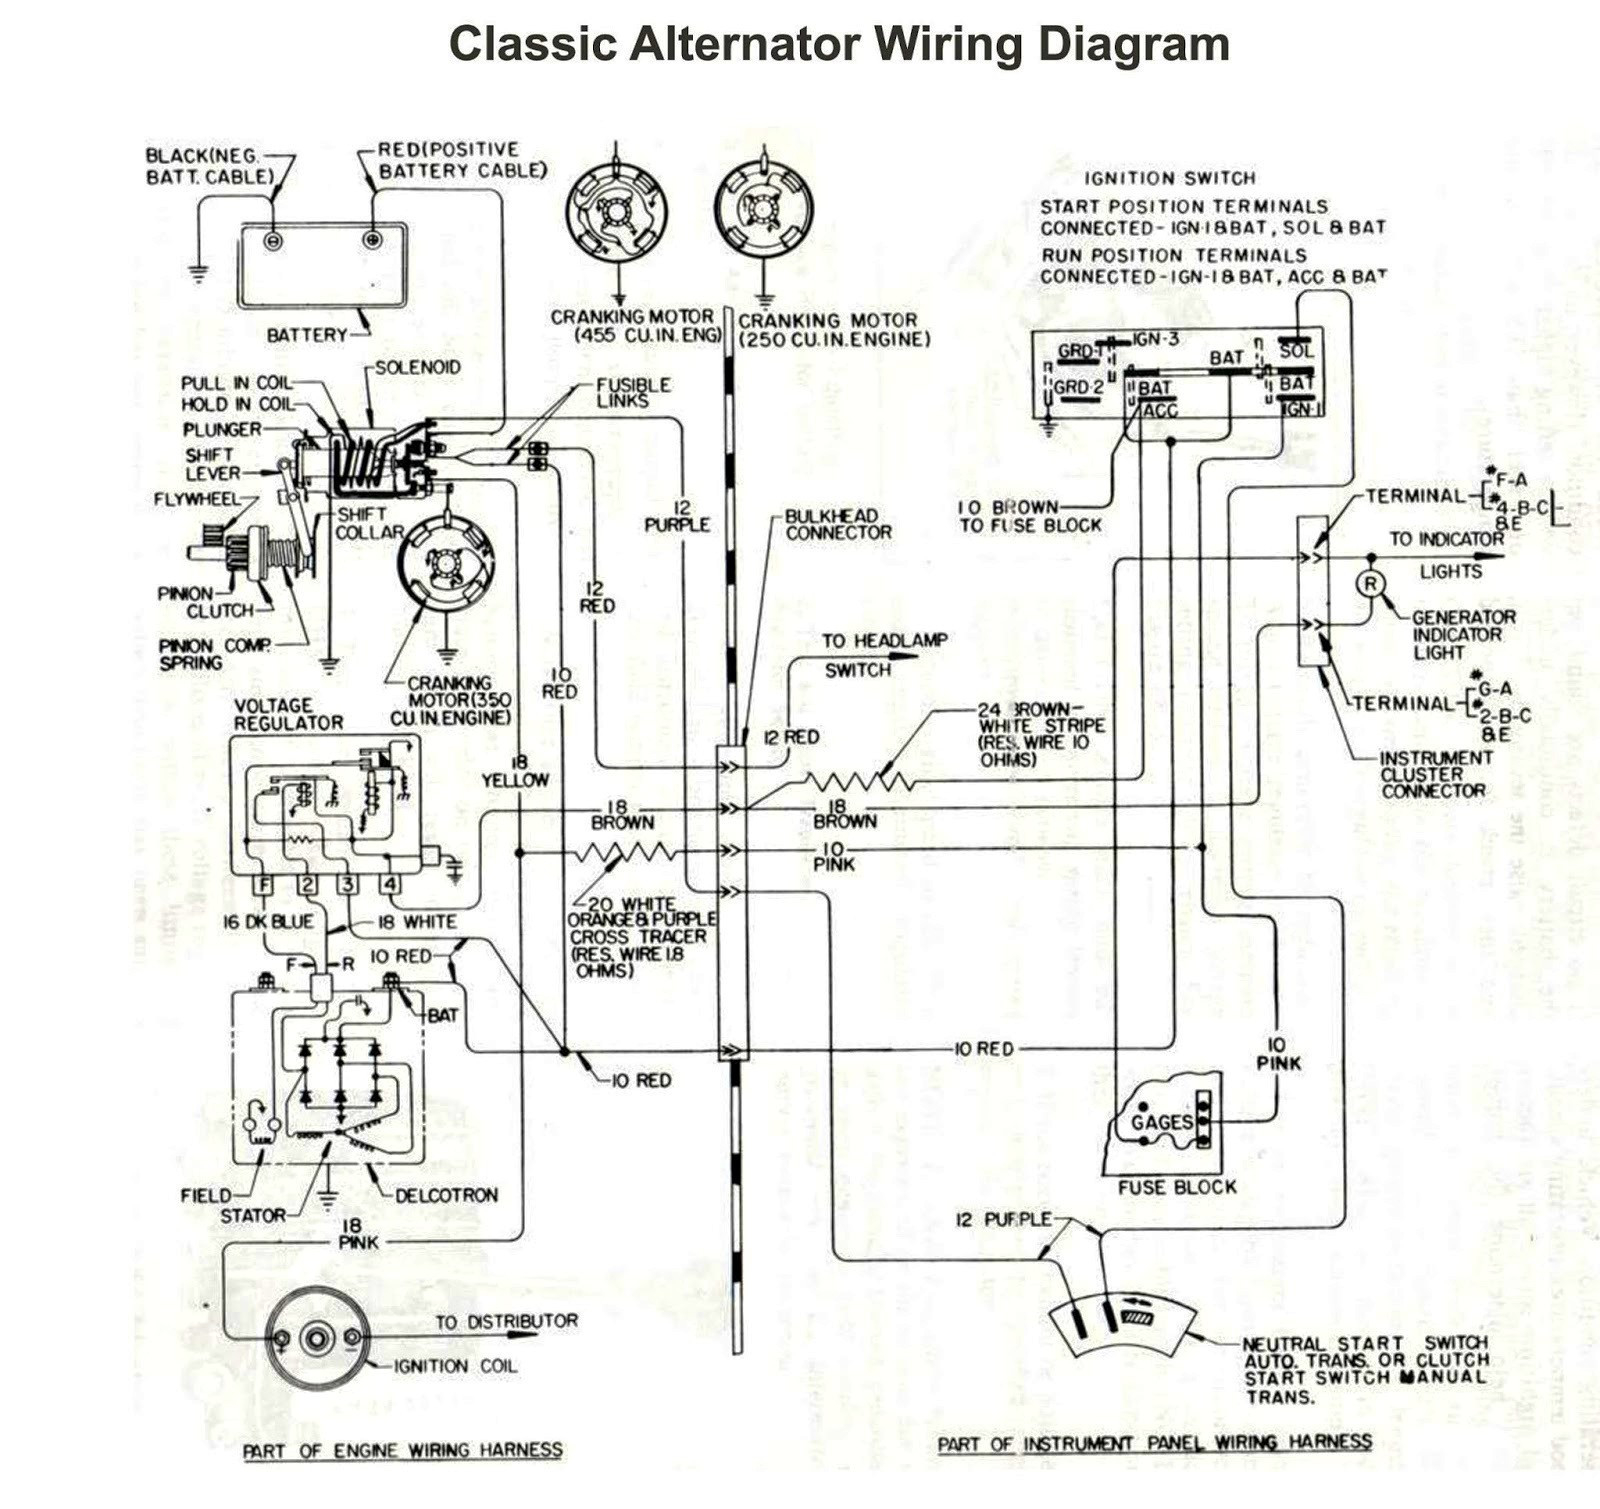 4 Wire Alternator Wiring Diagram from i1.wp.com